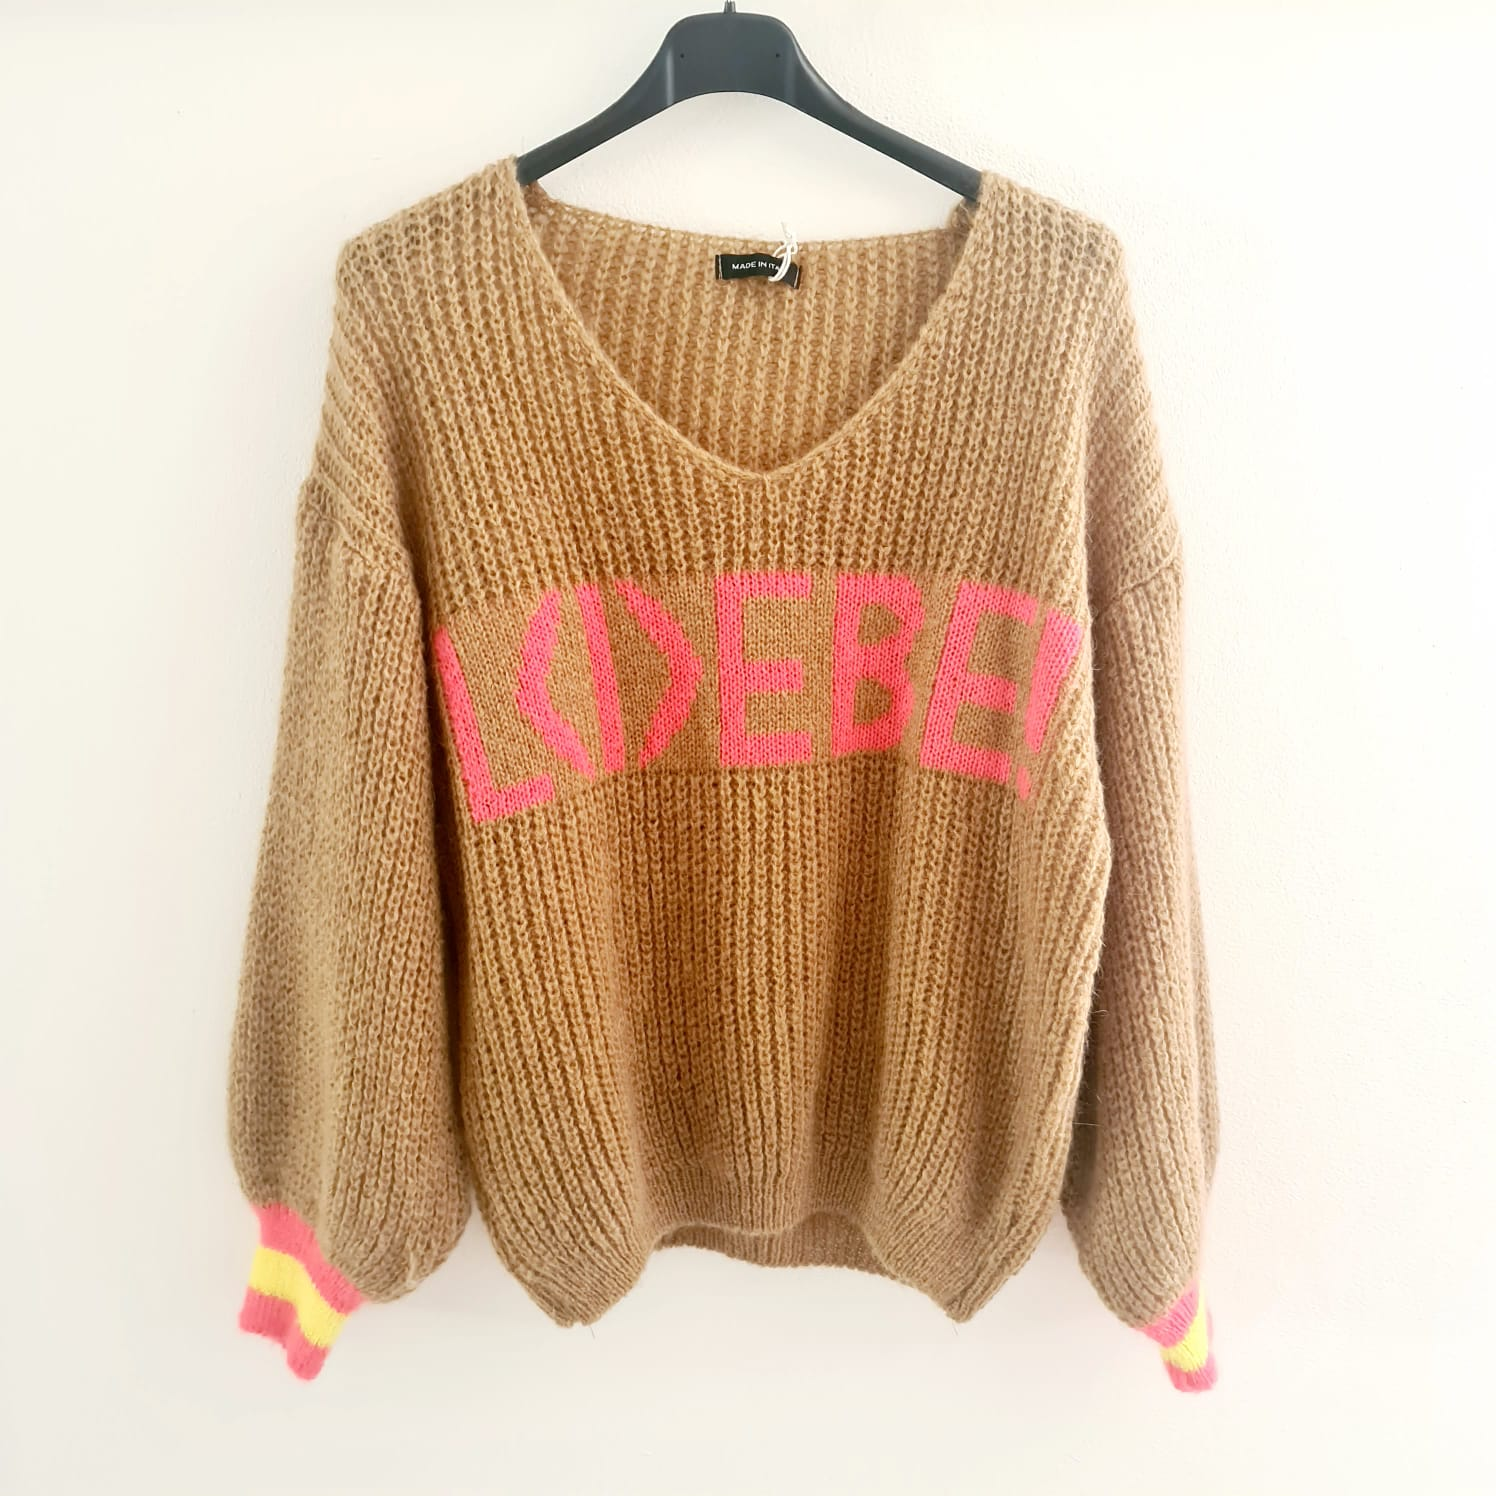 Statement Knit-Pullover